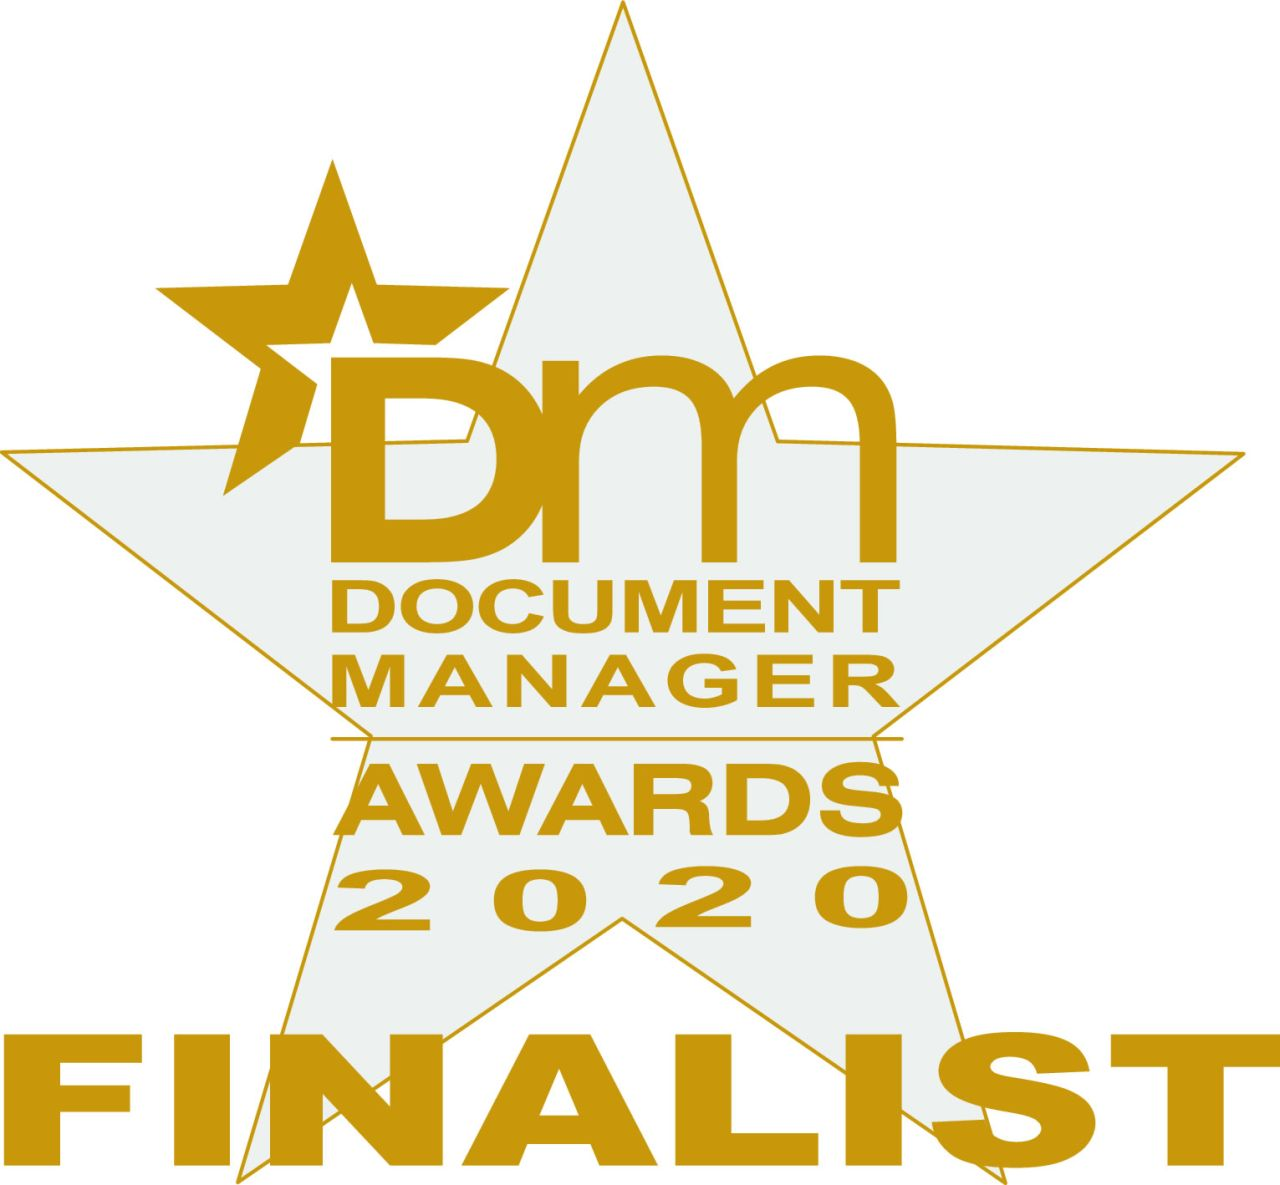 Intuitive Nominated Document Manager Awards 2020